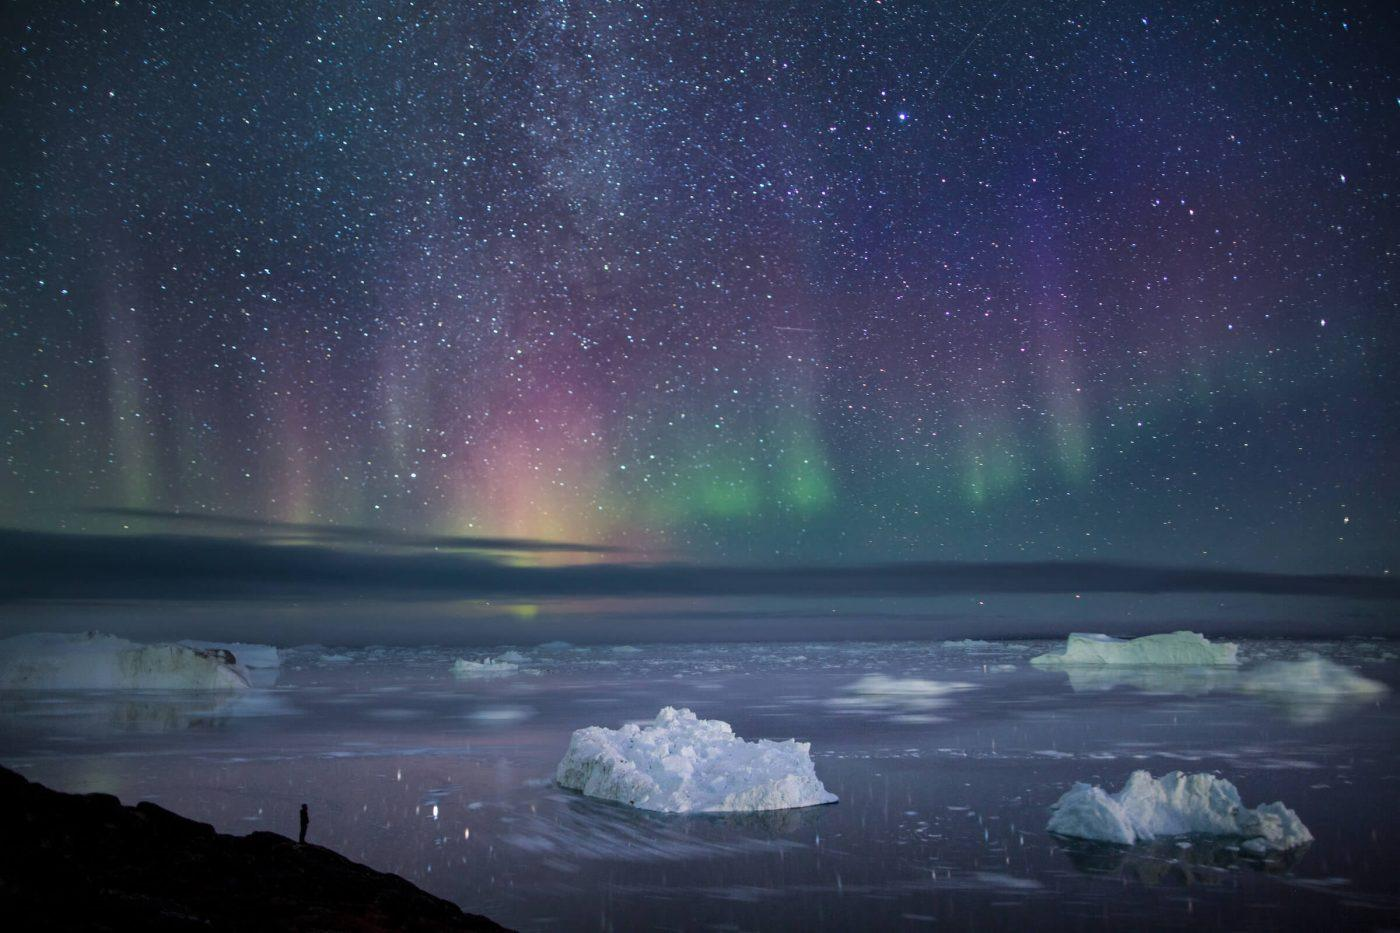 Hiker in Ilulissat, North Greenland standing at the Sermermiut overlook close to the Ilulissat Icefjord gazing at icebergs and a crisp autumn night sky filled with stars and northern lights. By Paul Zizka